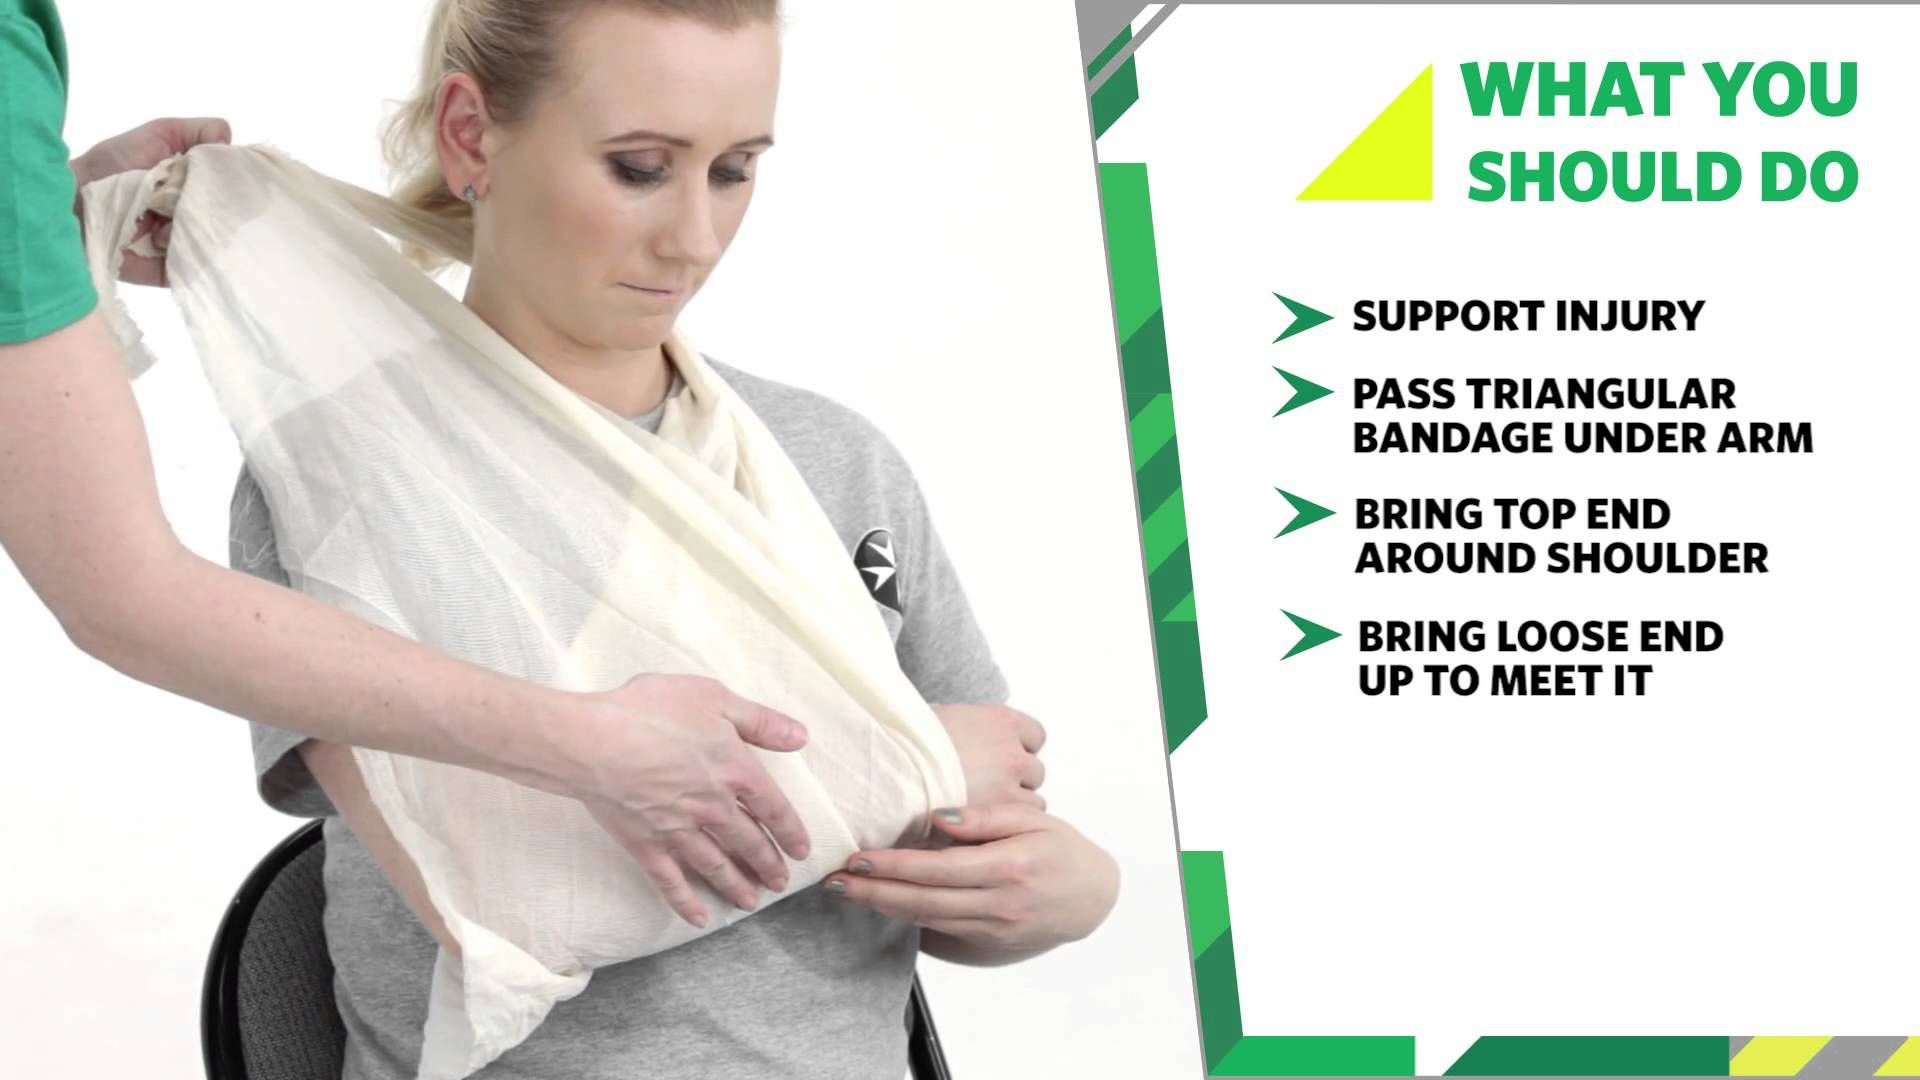 Forum on this topic: How to Make a Sling, how-to-make-a-sling/